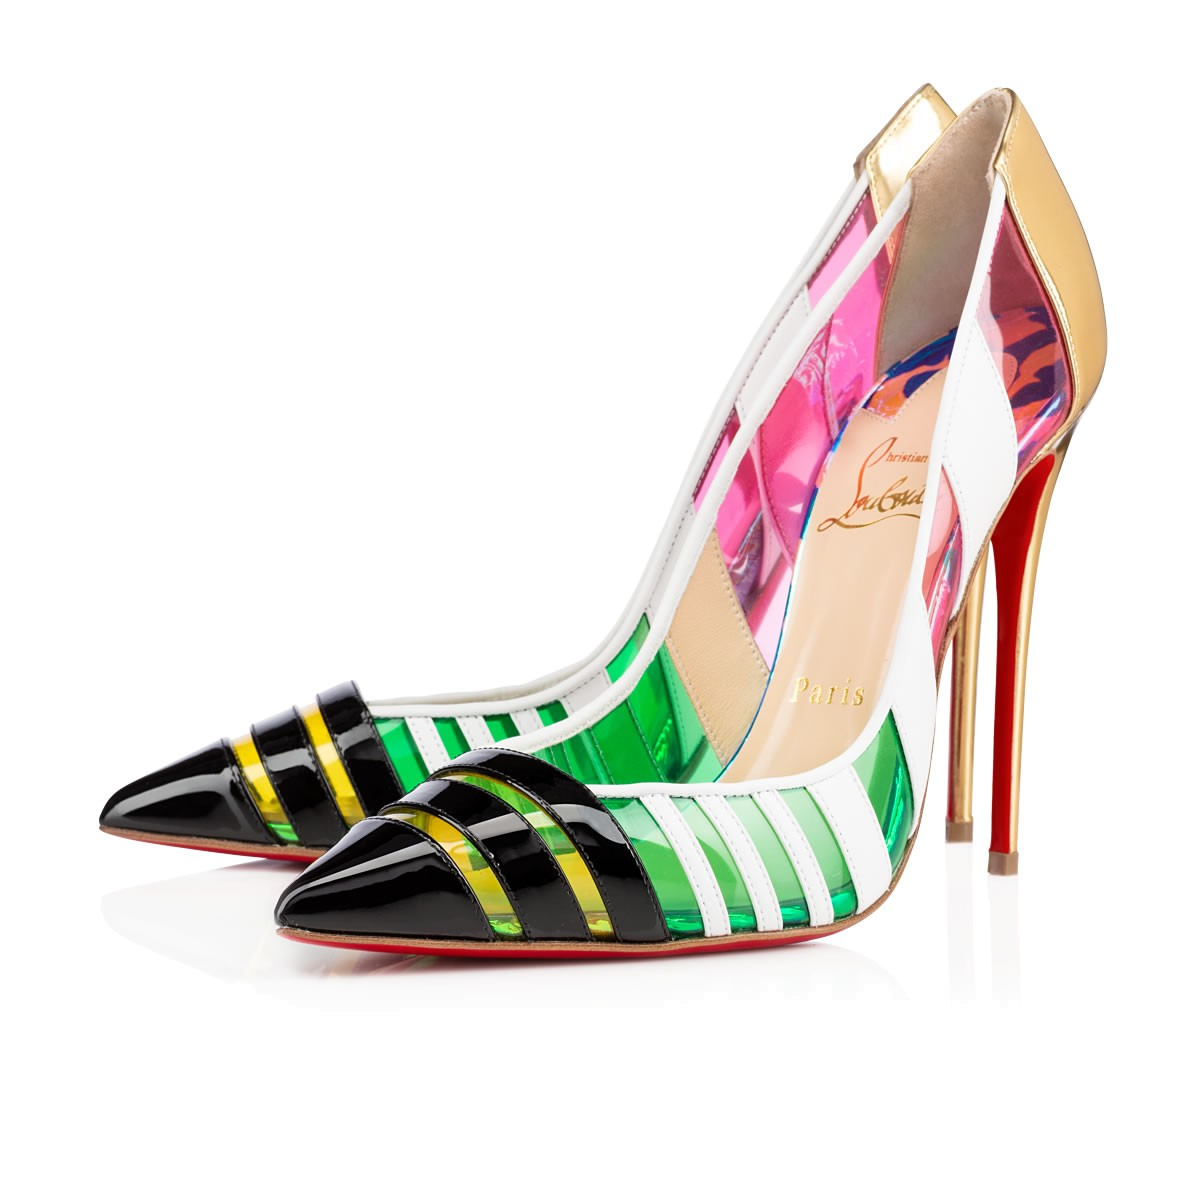 Christian Louboutin Bandy alternating stripes multicolored kid leather PVC patent pumps